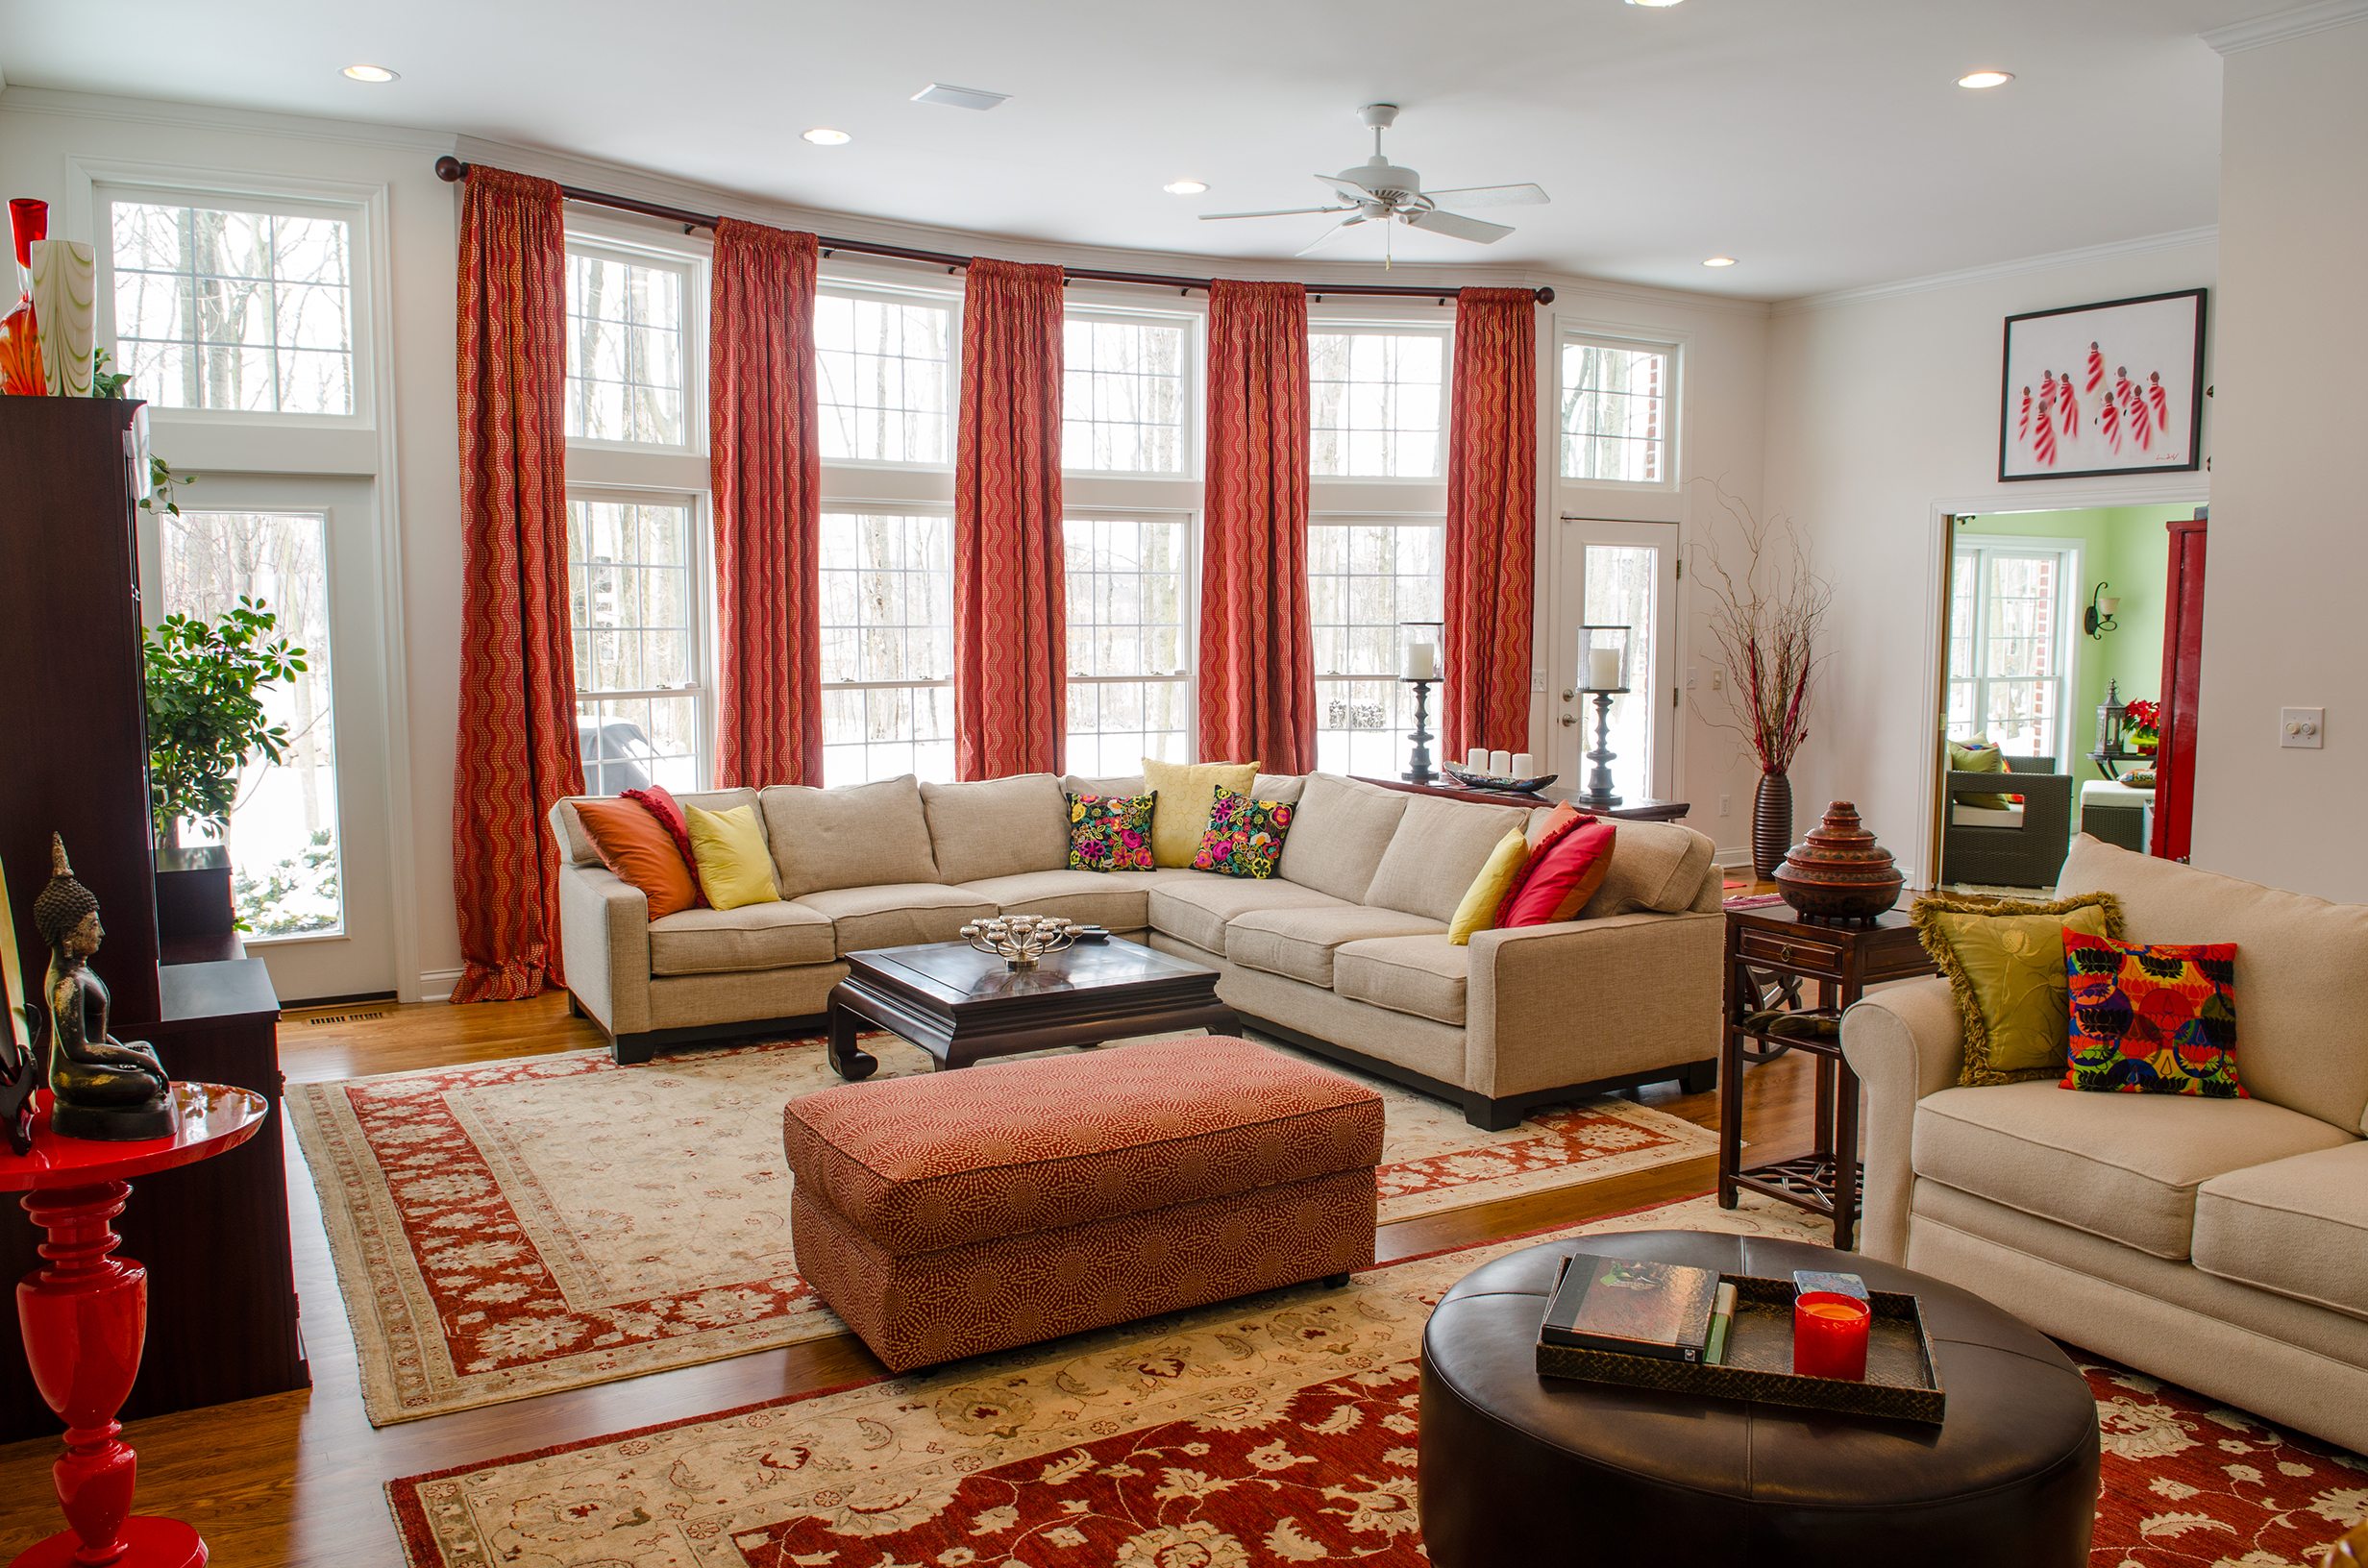 Modern living room with stylish curtains and painting hanging on the wall